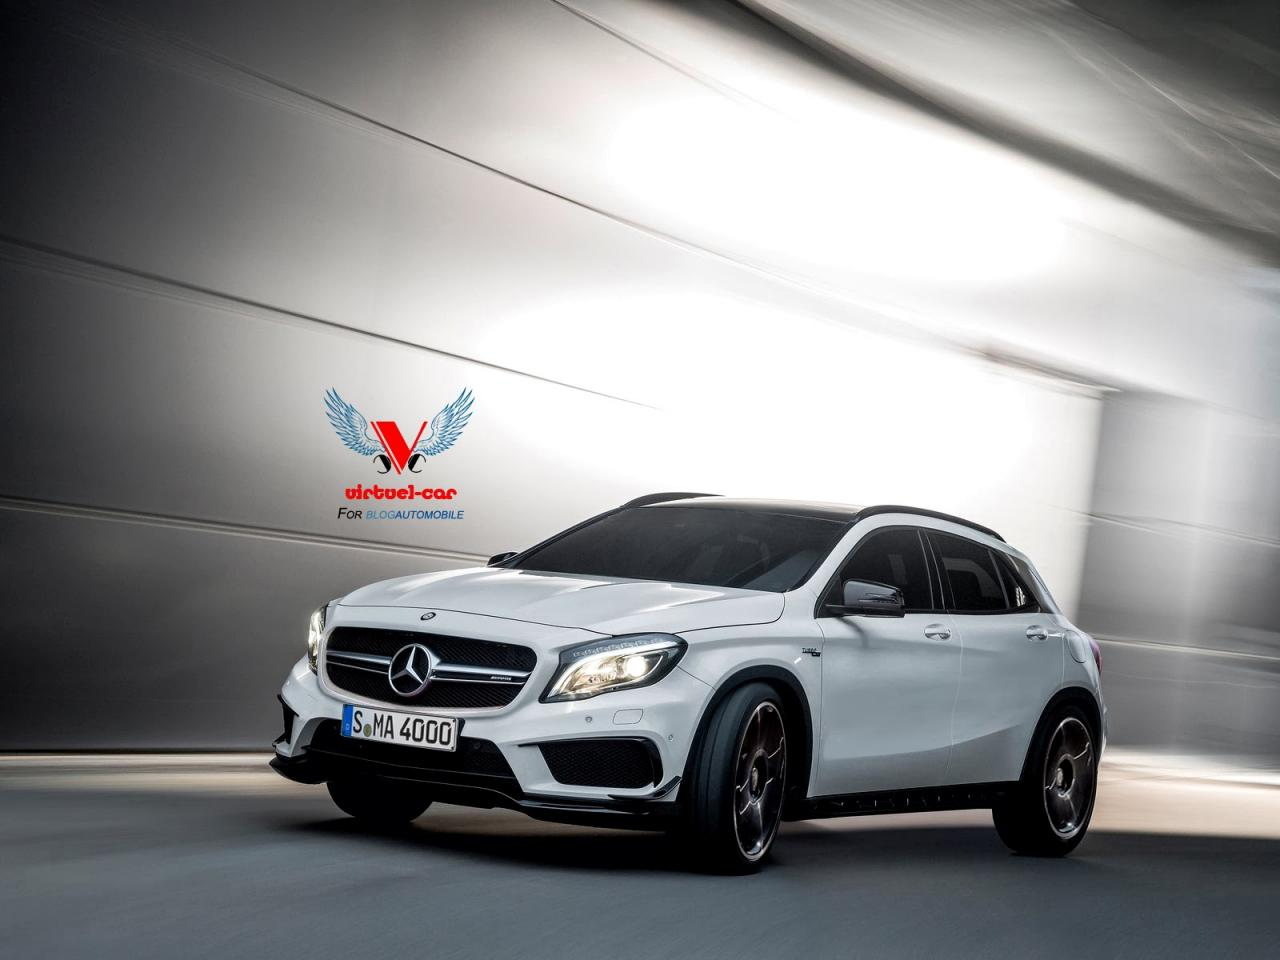 Mercedes GLA 45 AMG Mercedes GLA 45 AMG and S600 Maybach Coming Out on January